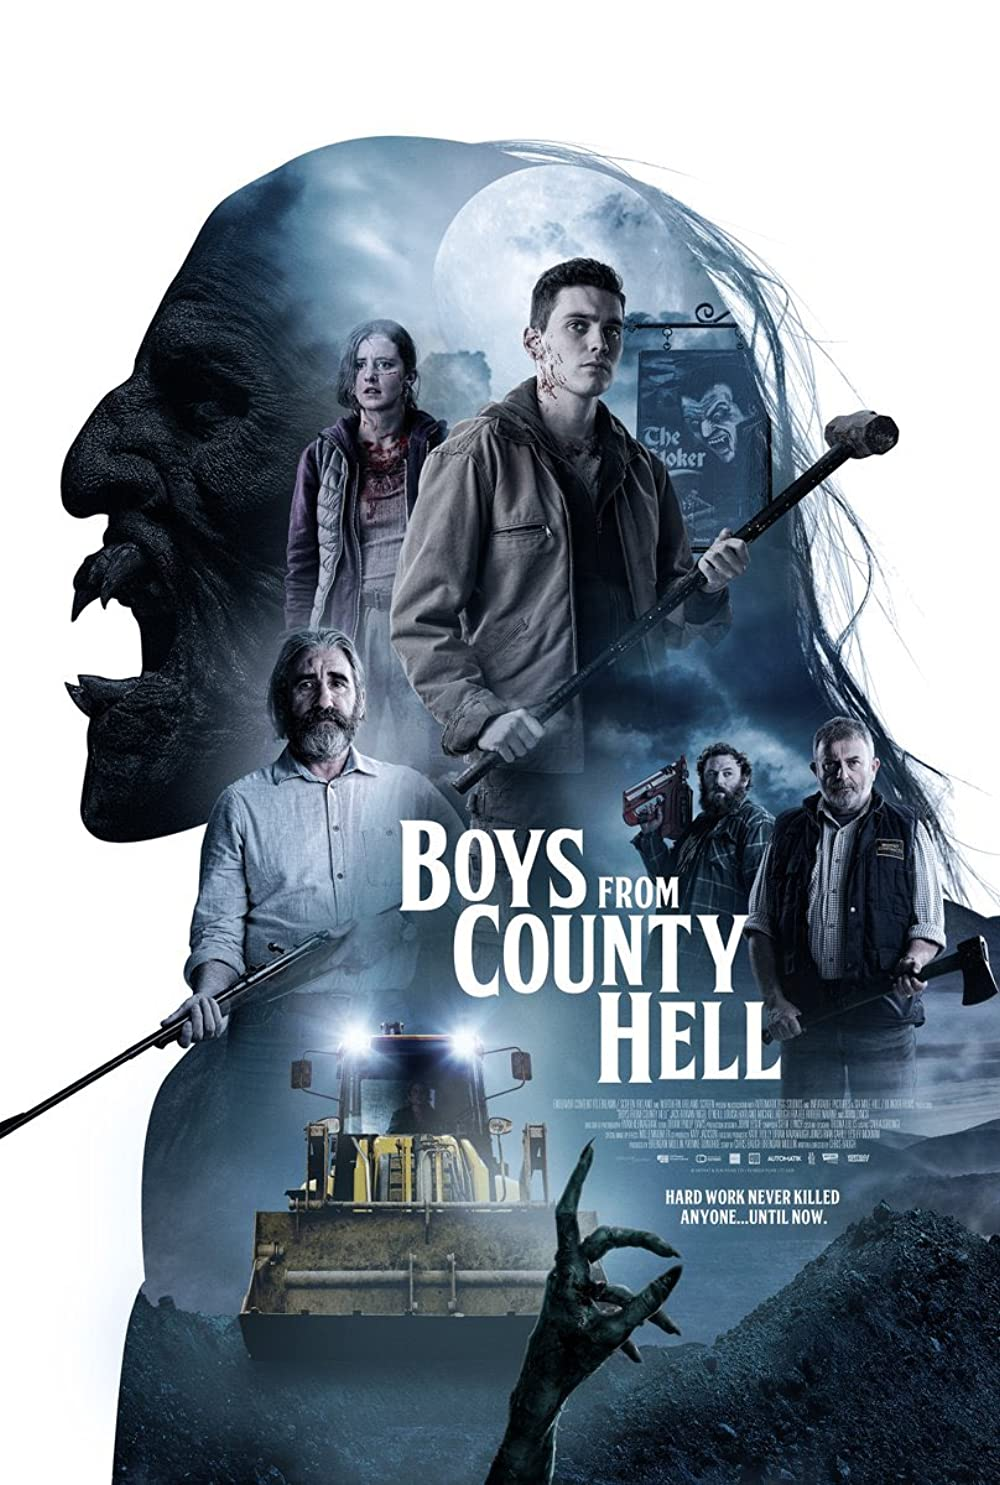 Boys from County Hell 2021 English 1080p HDRip ESubs 1.4GB Download